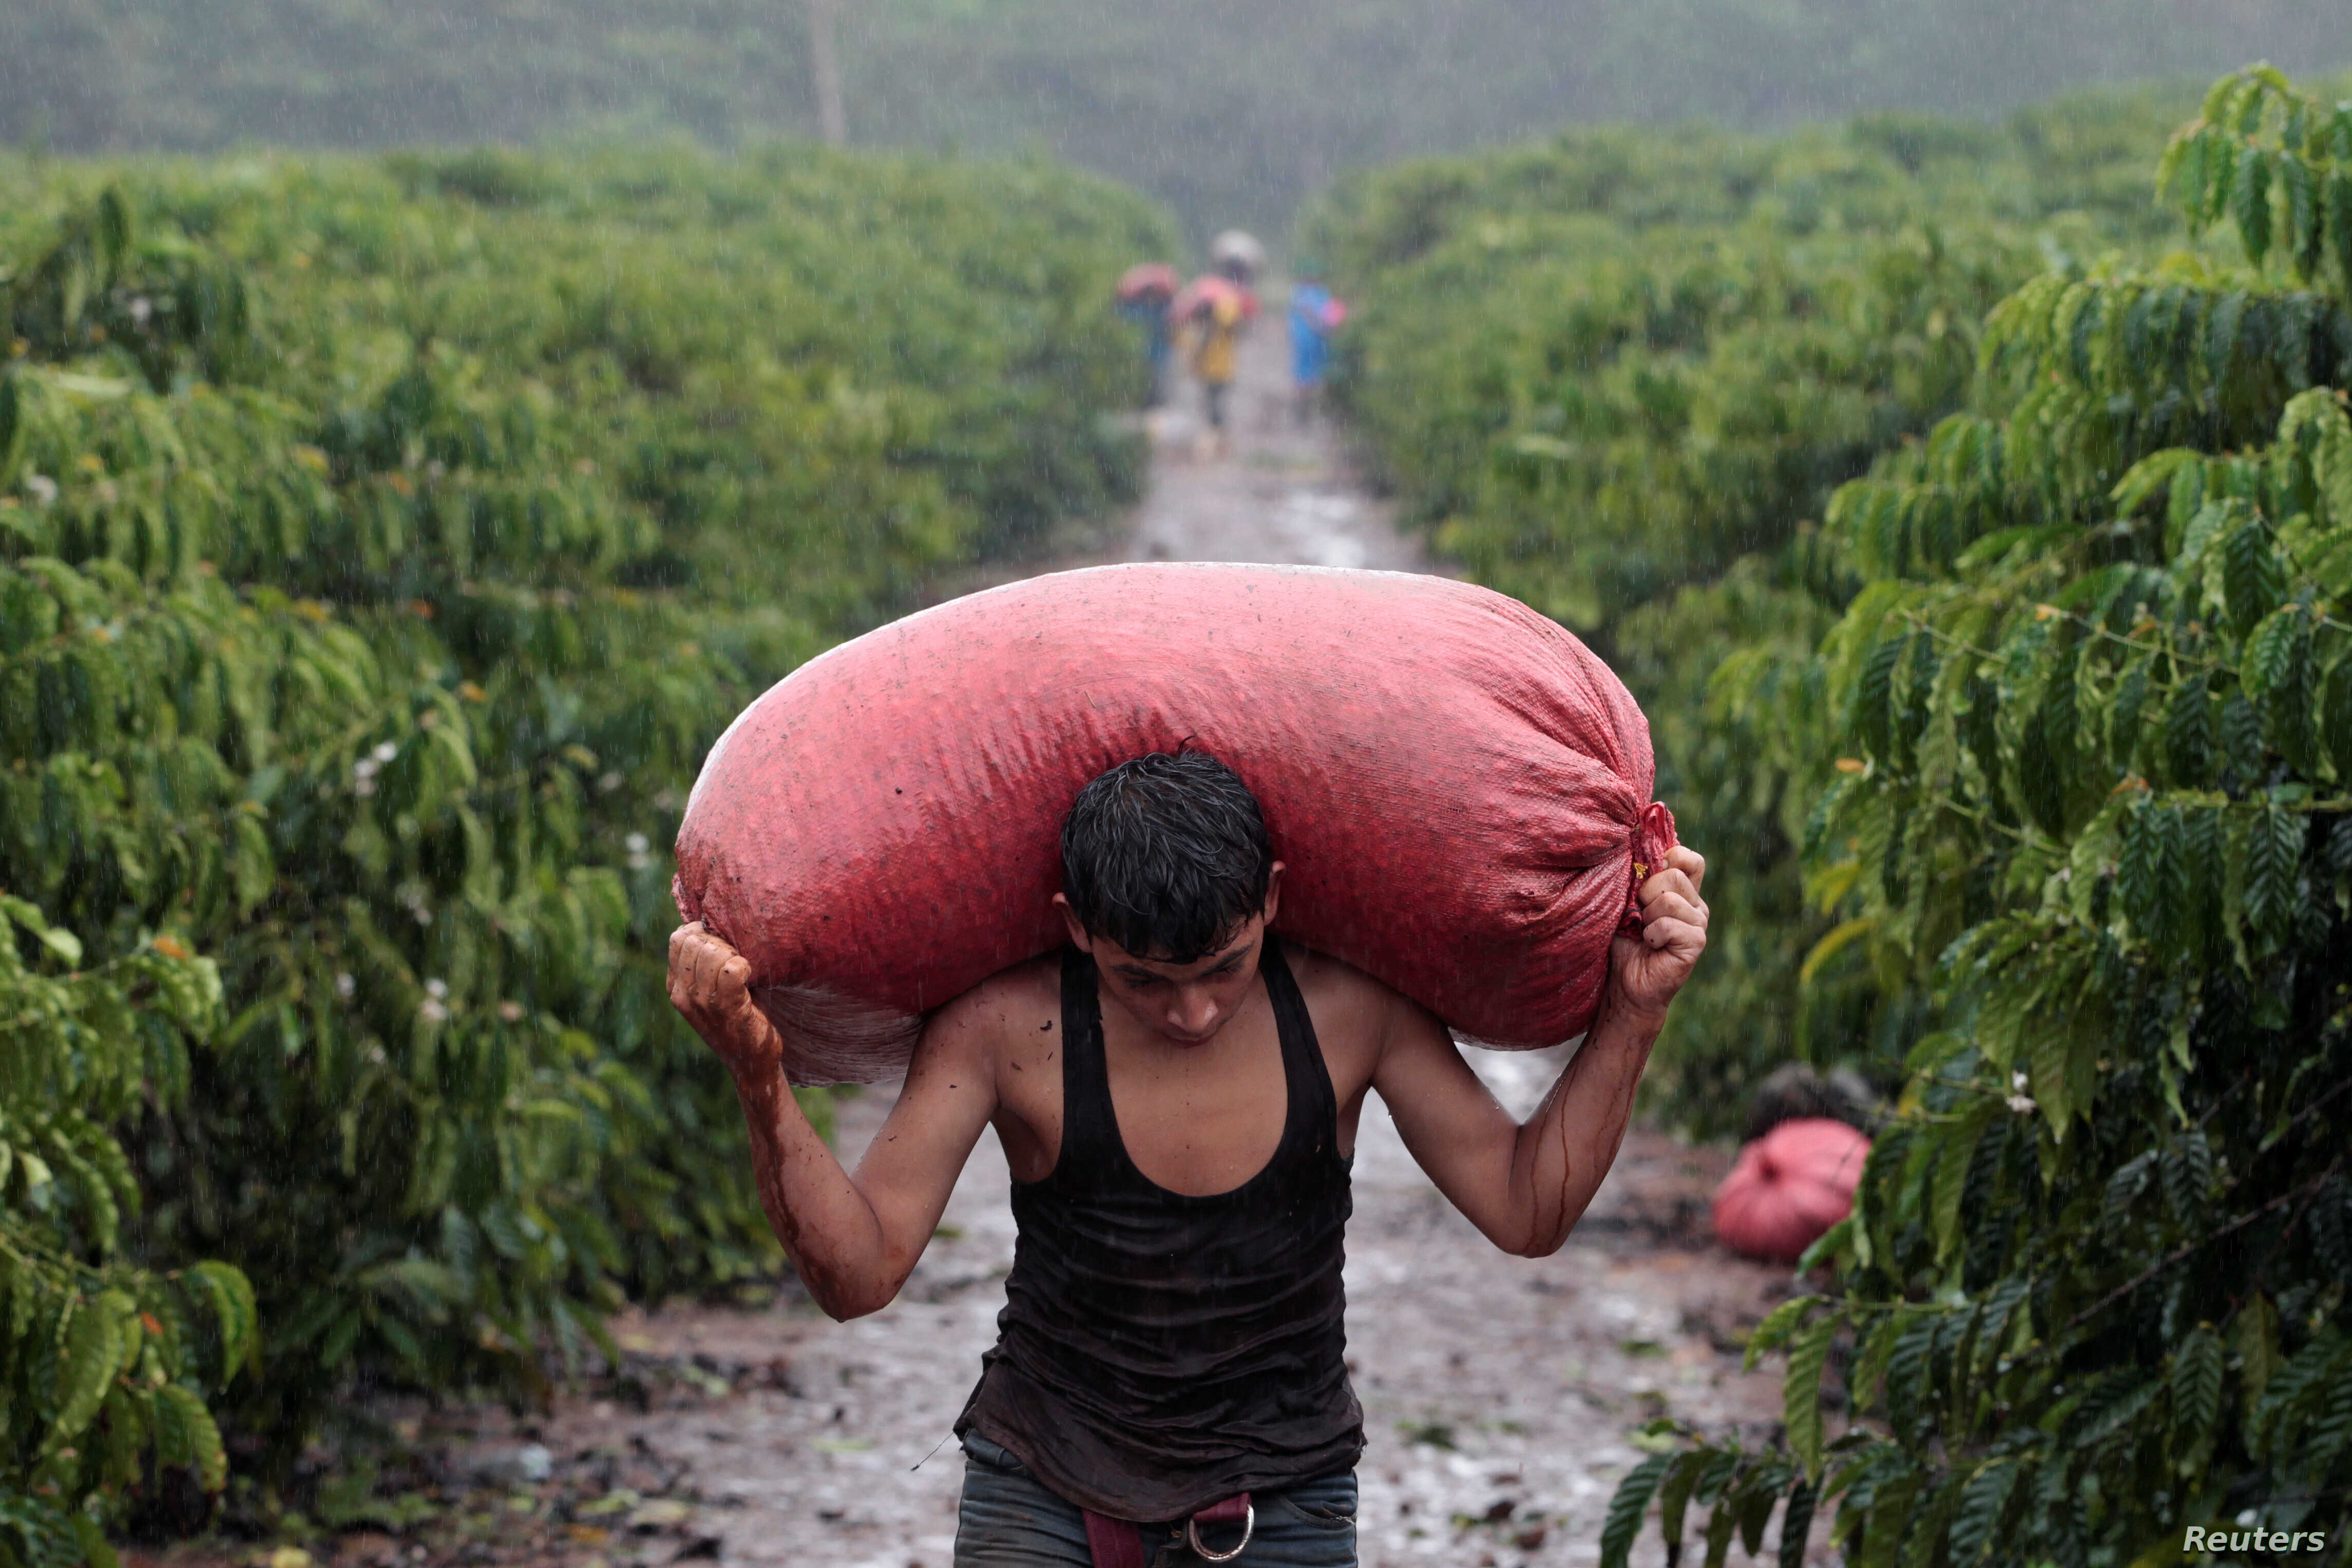 A worker carries a sack of recently harvested robusta coffee fruits at a plantation in Nueva Guinea, Nicaragua, Dec. 29, 2017.